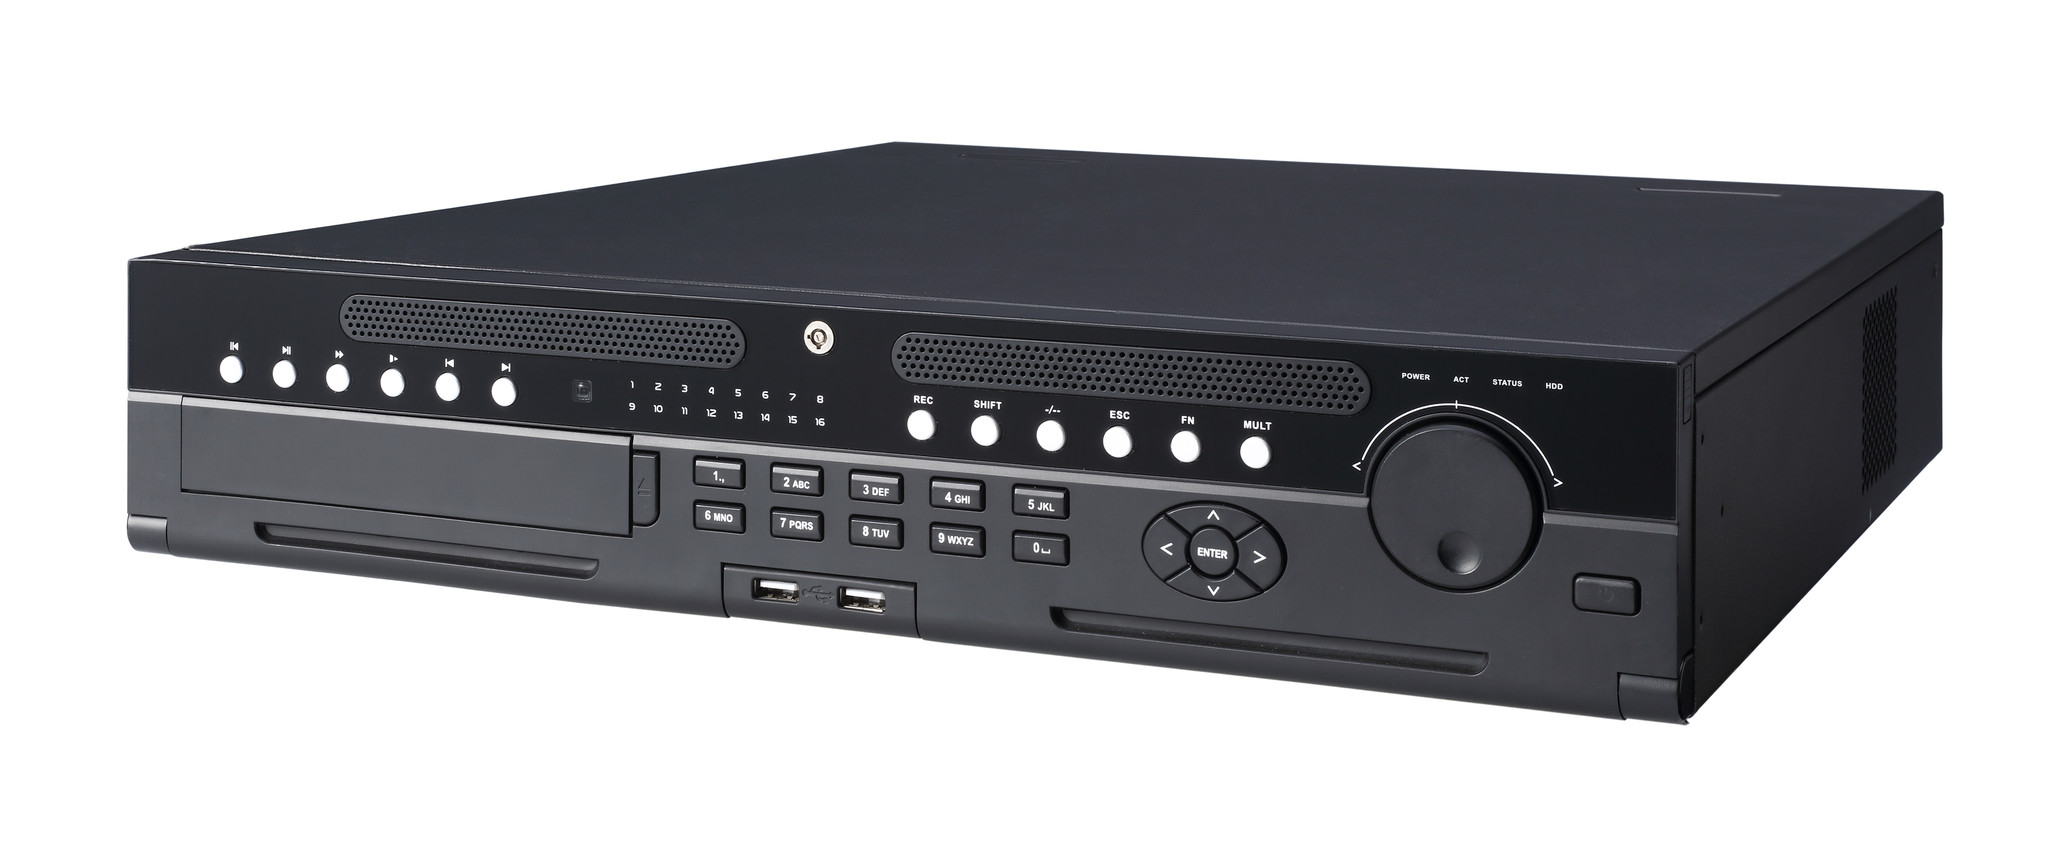 DAHUA DHI-NVR608-128-4K - SUPER 4K 128 CHANNEL NVR